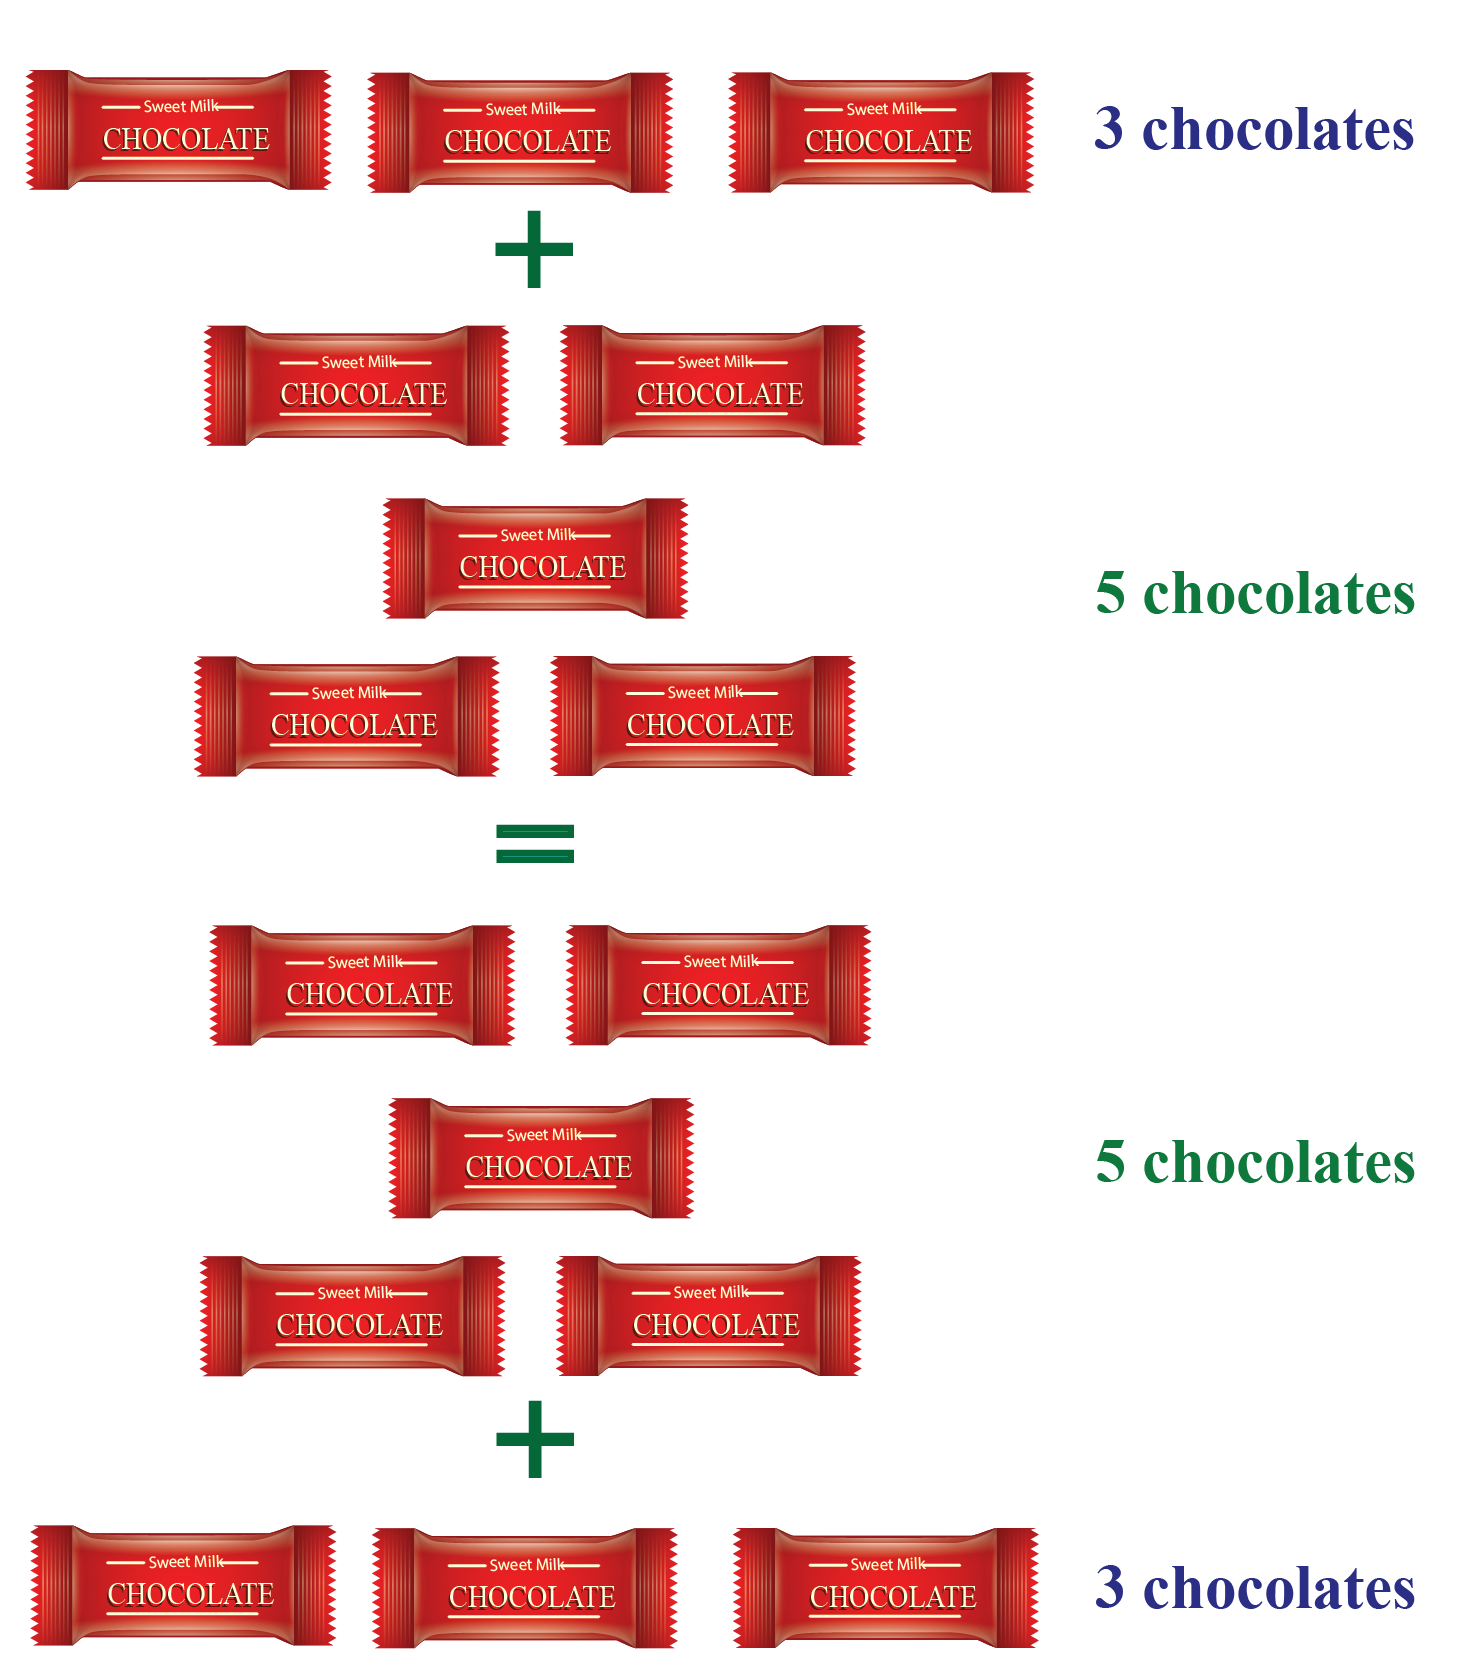 Commutative Property of Addition Solved Example - Sam was given 3 chocolates by his mother for his good behavior, and 5 chocolates by his father for cleanliness.